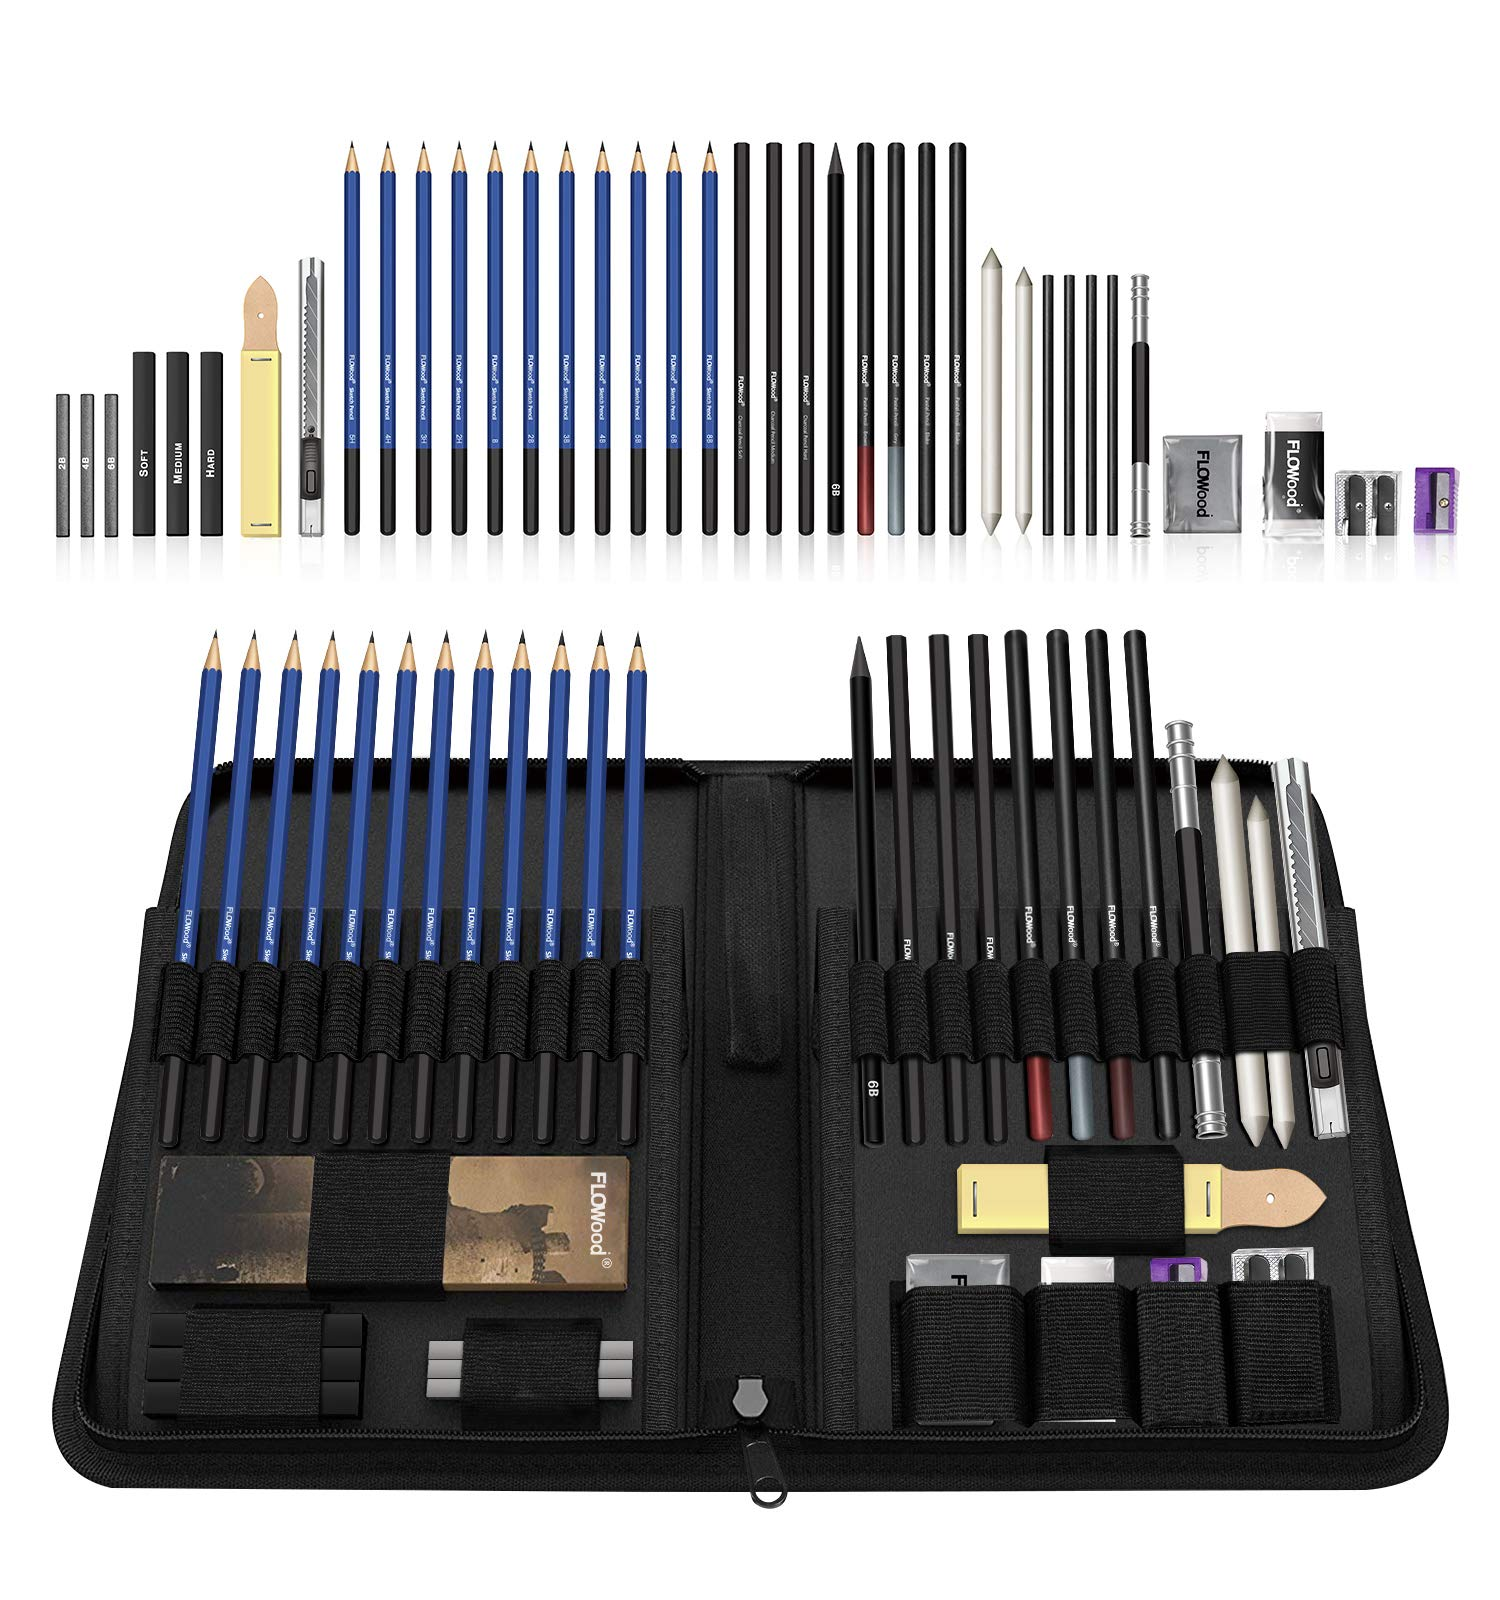 Flowood 40 Piece Professional Art Kit Drawing and Sketching Pencil Set with Eraser,Pastels,Graphite and Charcoal Sticks Art Supplies by Otdair